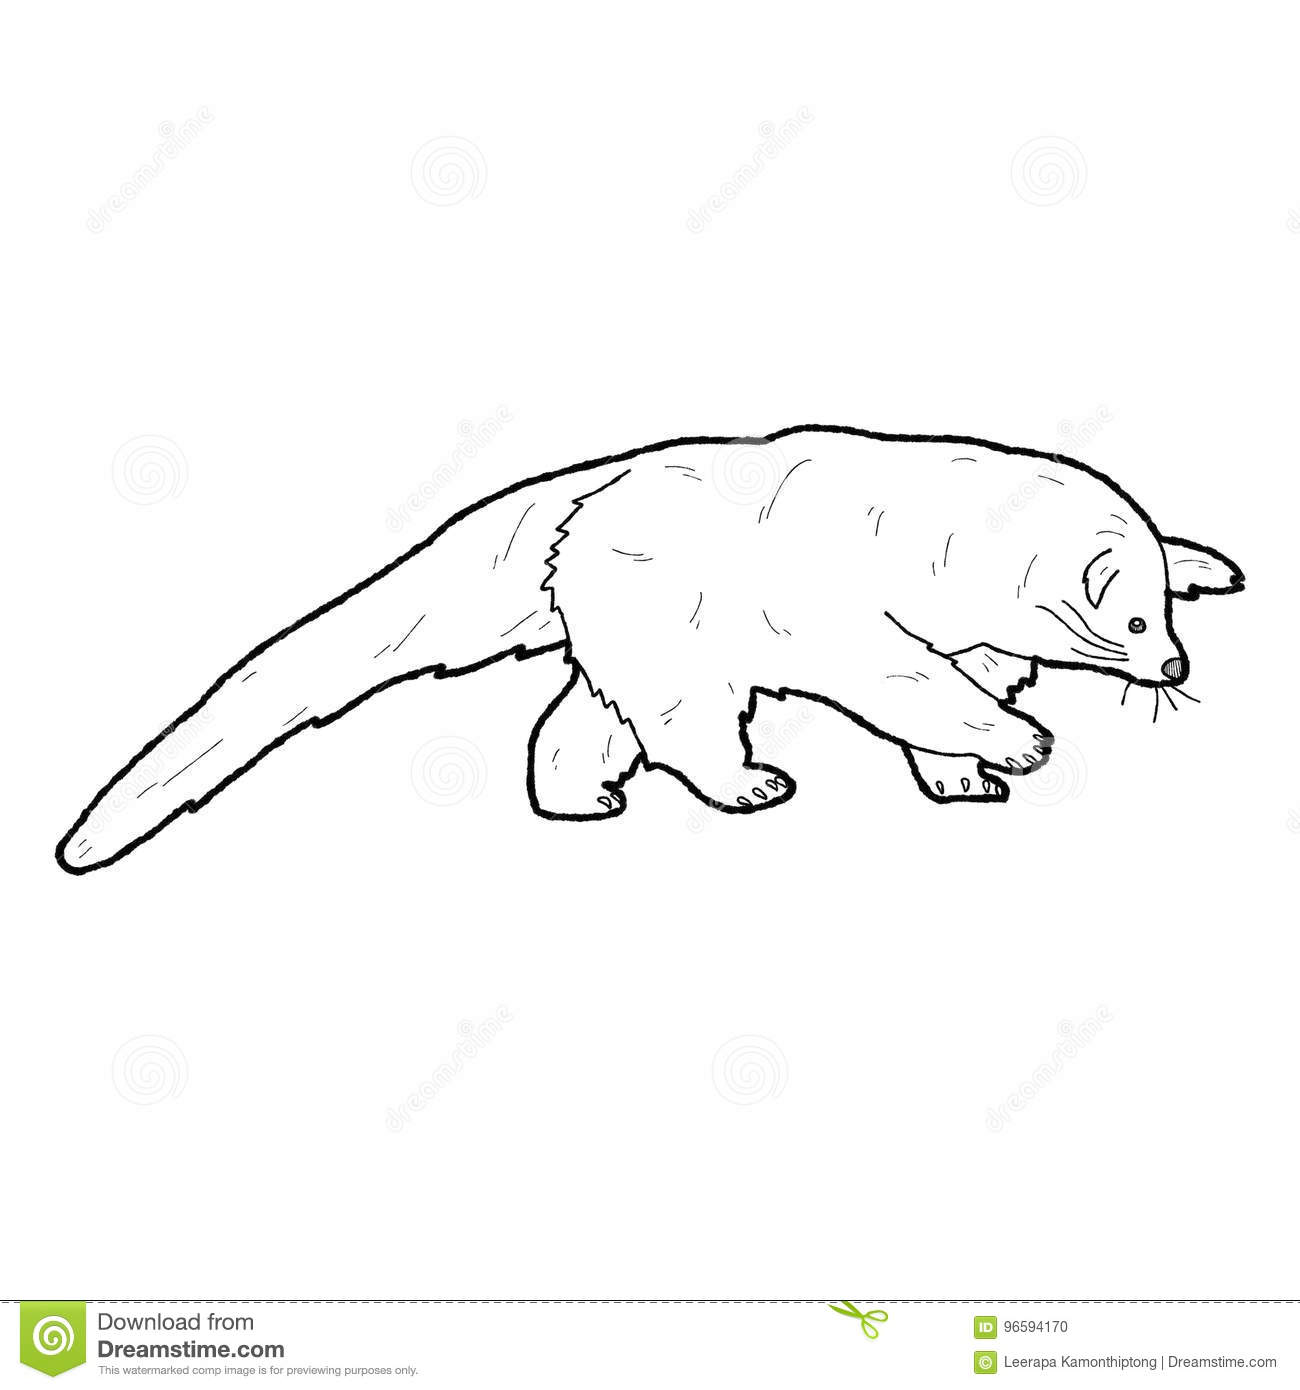 Binturong Stock Illustrations U2013 25 Binturong Stock Illustrations, Vectors U0026  Clipart   Dreamstime